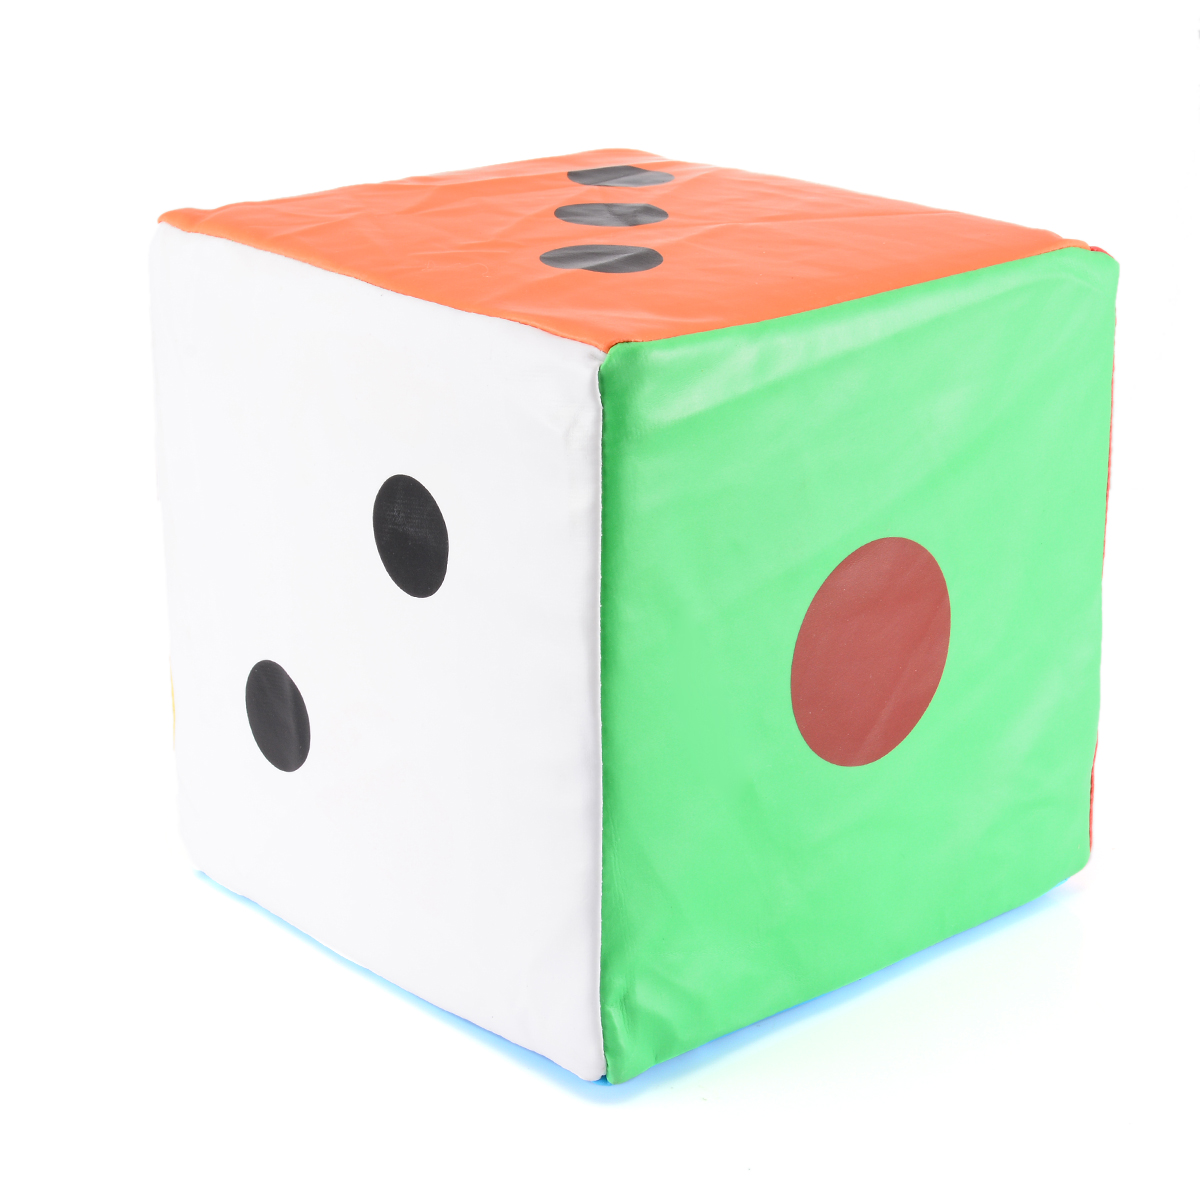 5.9 inch Plush Dice Kids Stuffed Toy Cubic Pillow Home Sofa Decoration Green